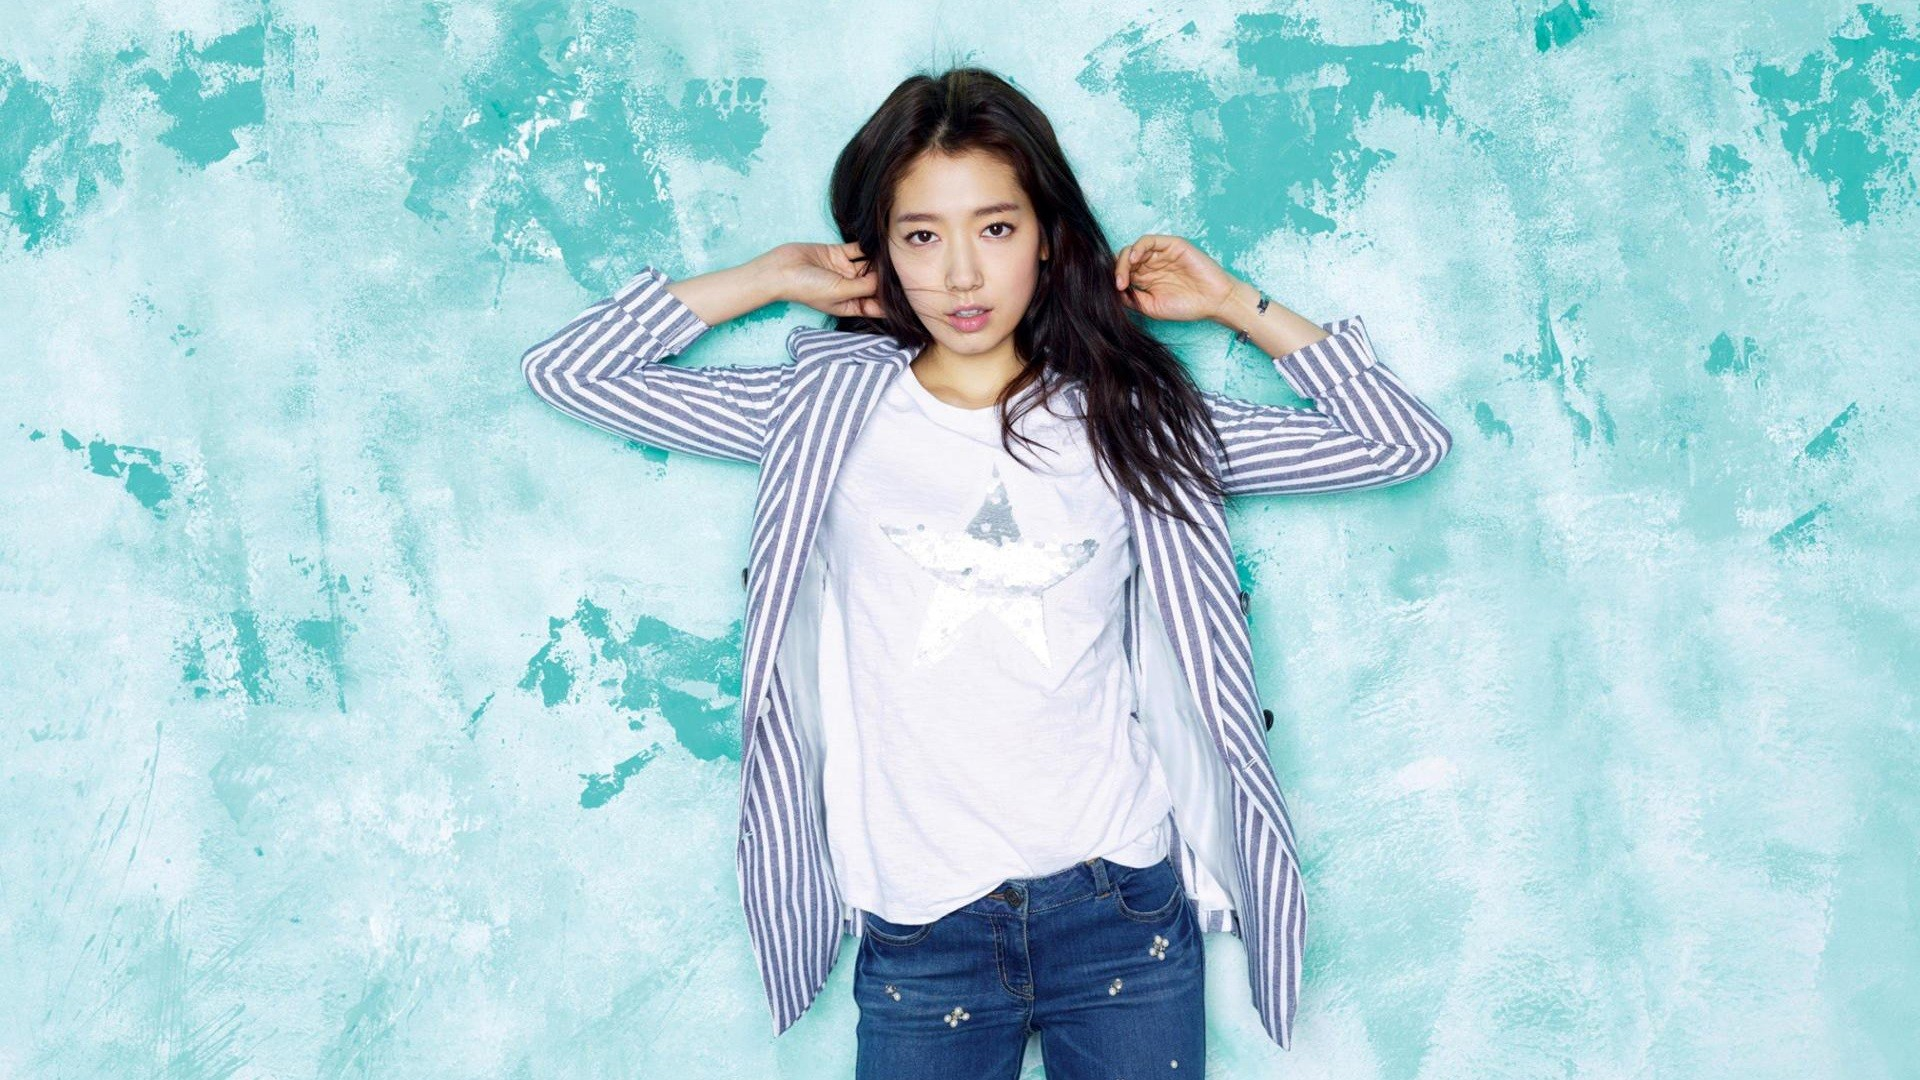 Park Shin Hye Wallpapers 55 Pictures